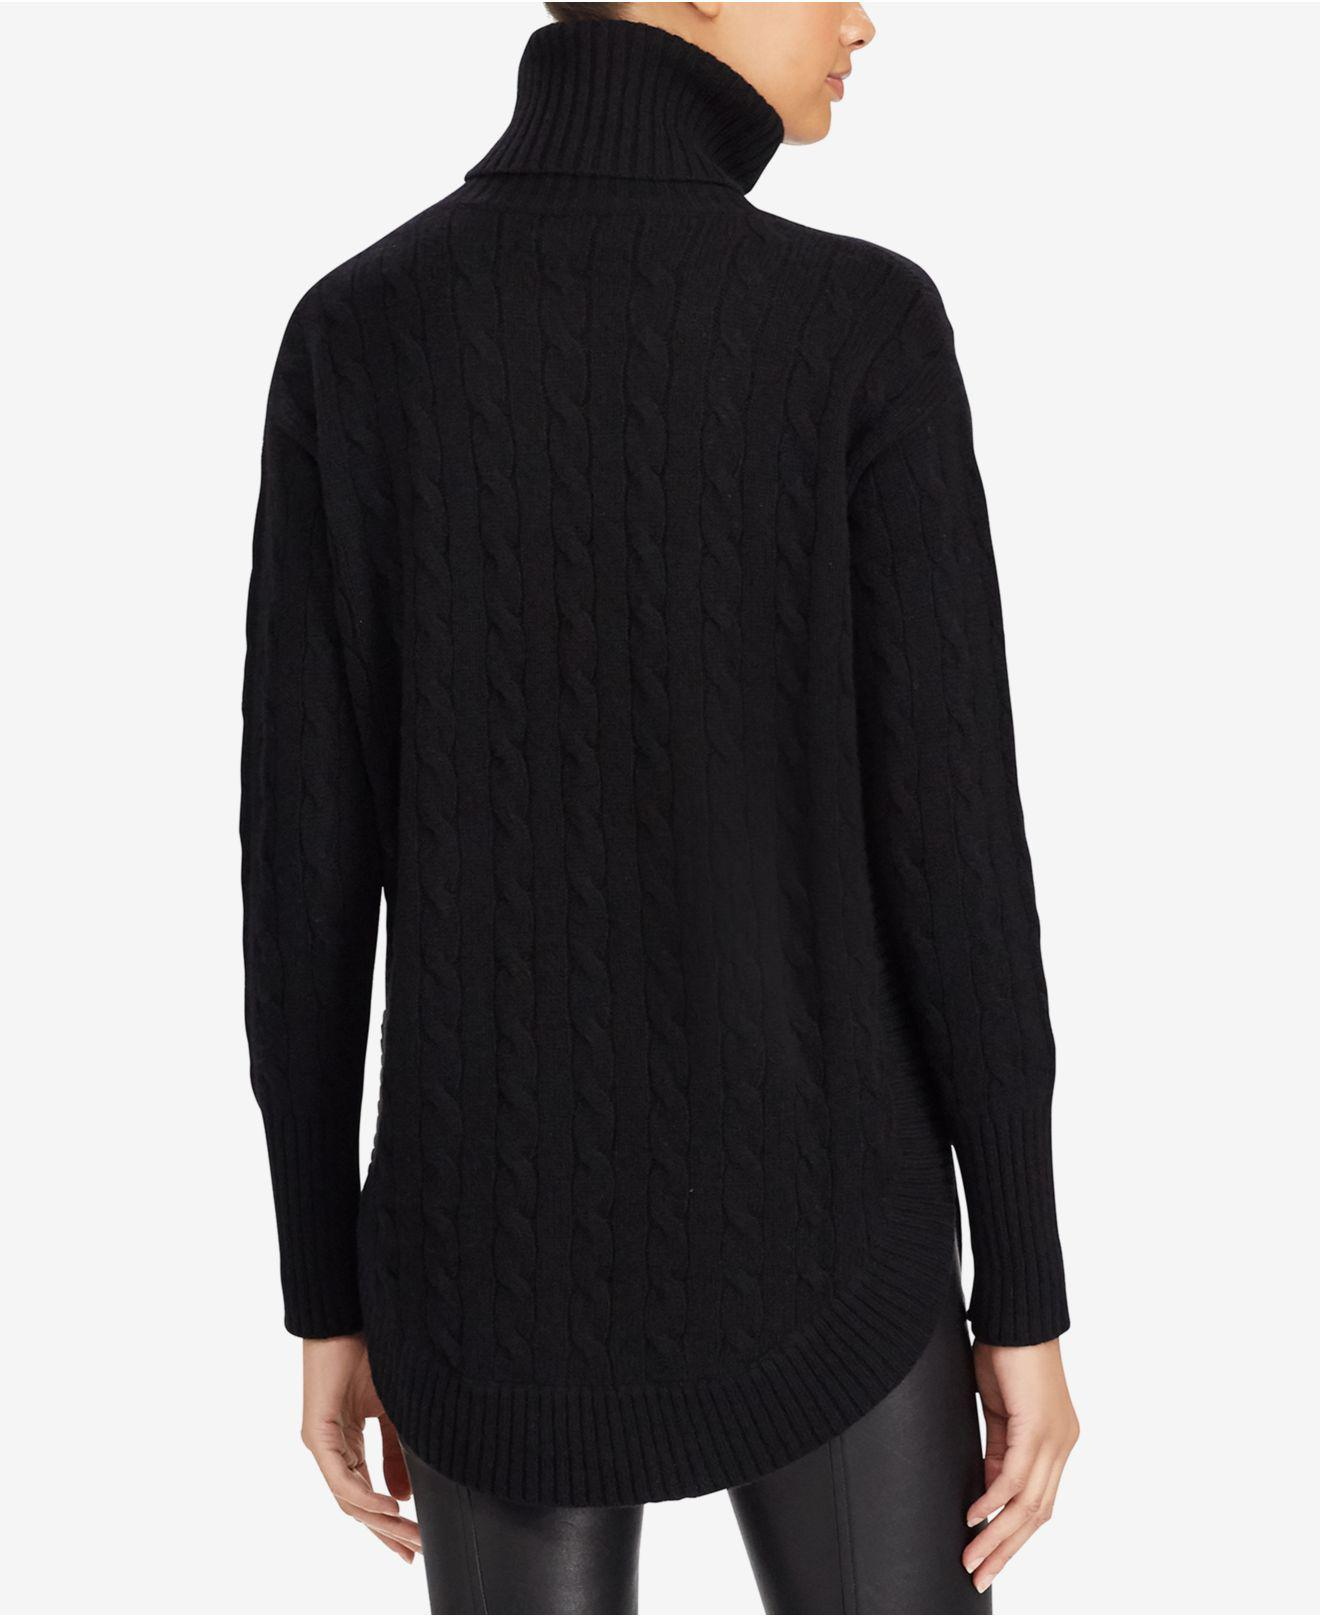 Polo ralph lauren Cable-knit Turtleneck Sweater in Black | Lyst